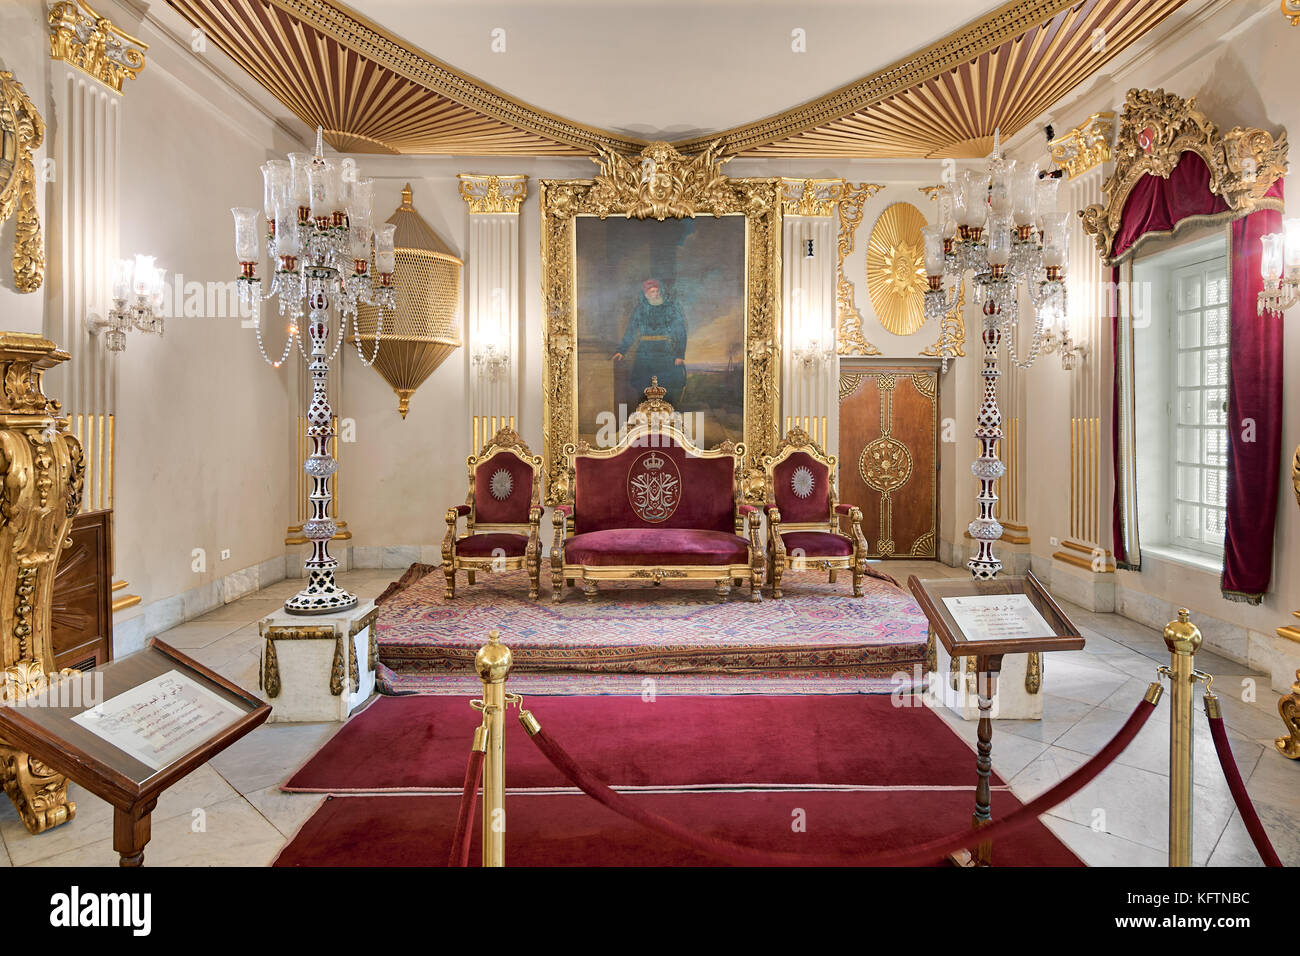 Cairo, Egypt - October 21, 2017: Throne Hall at Manial Palace of Prince Mohammed Ali Tewfik with gold plated red - Stock Image